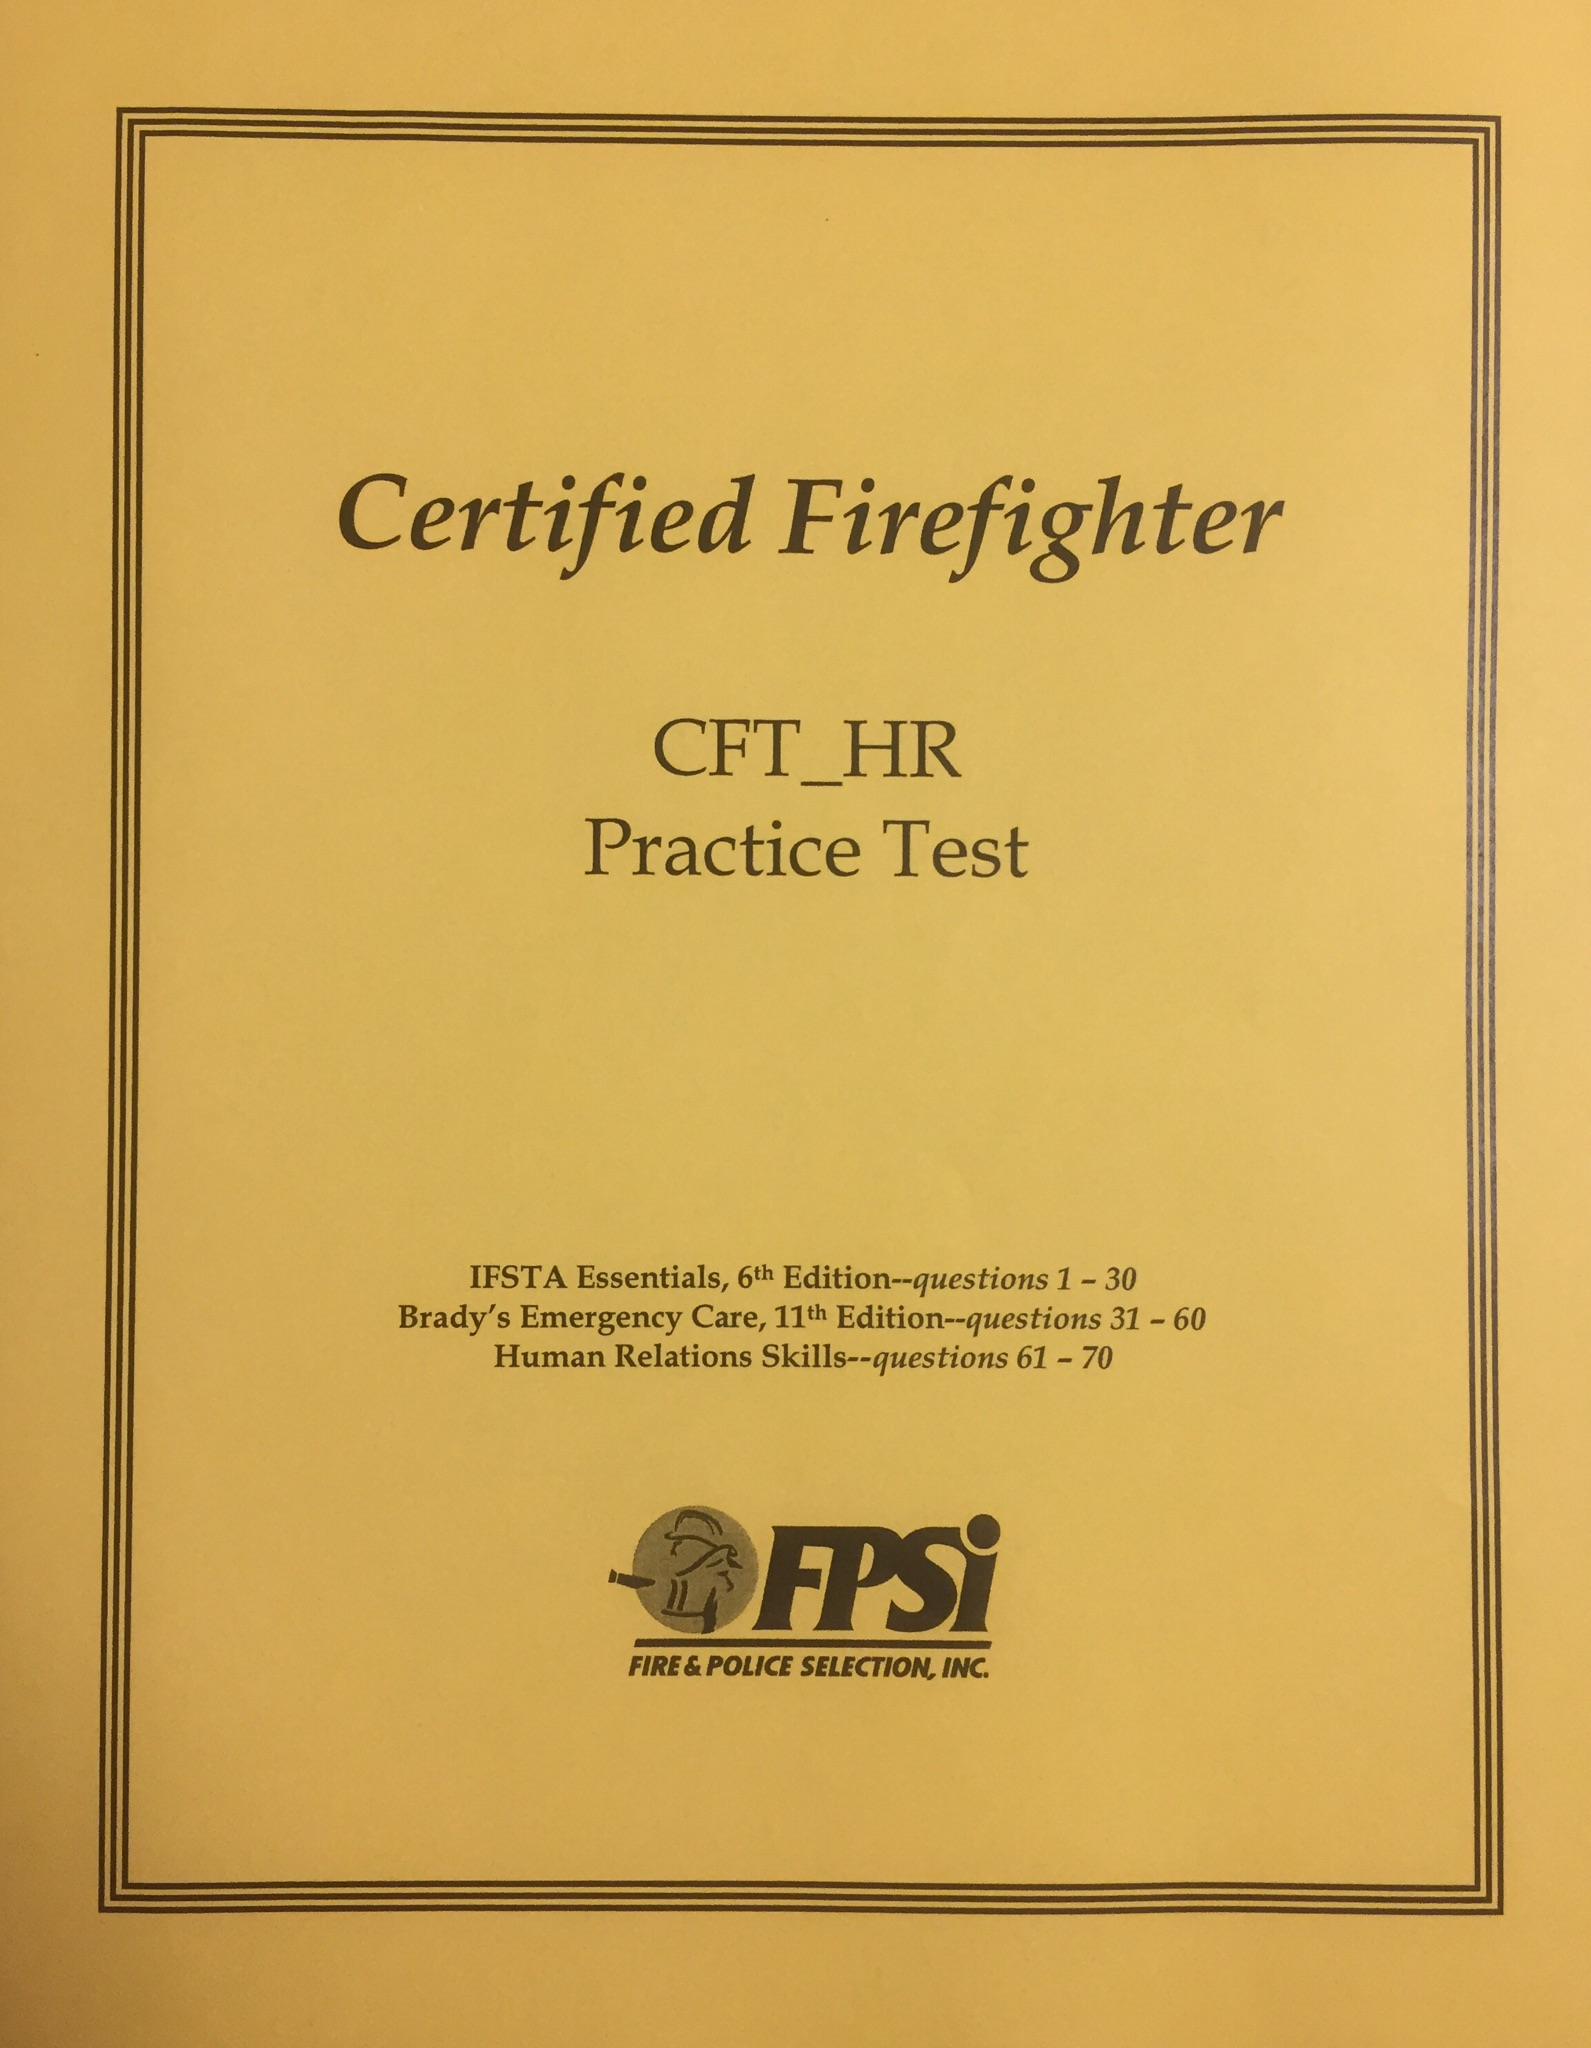 firefighter tpm 11th edition study guide rh fpsi com fpsi 11th edition study guide Fpsi Grant DUI